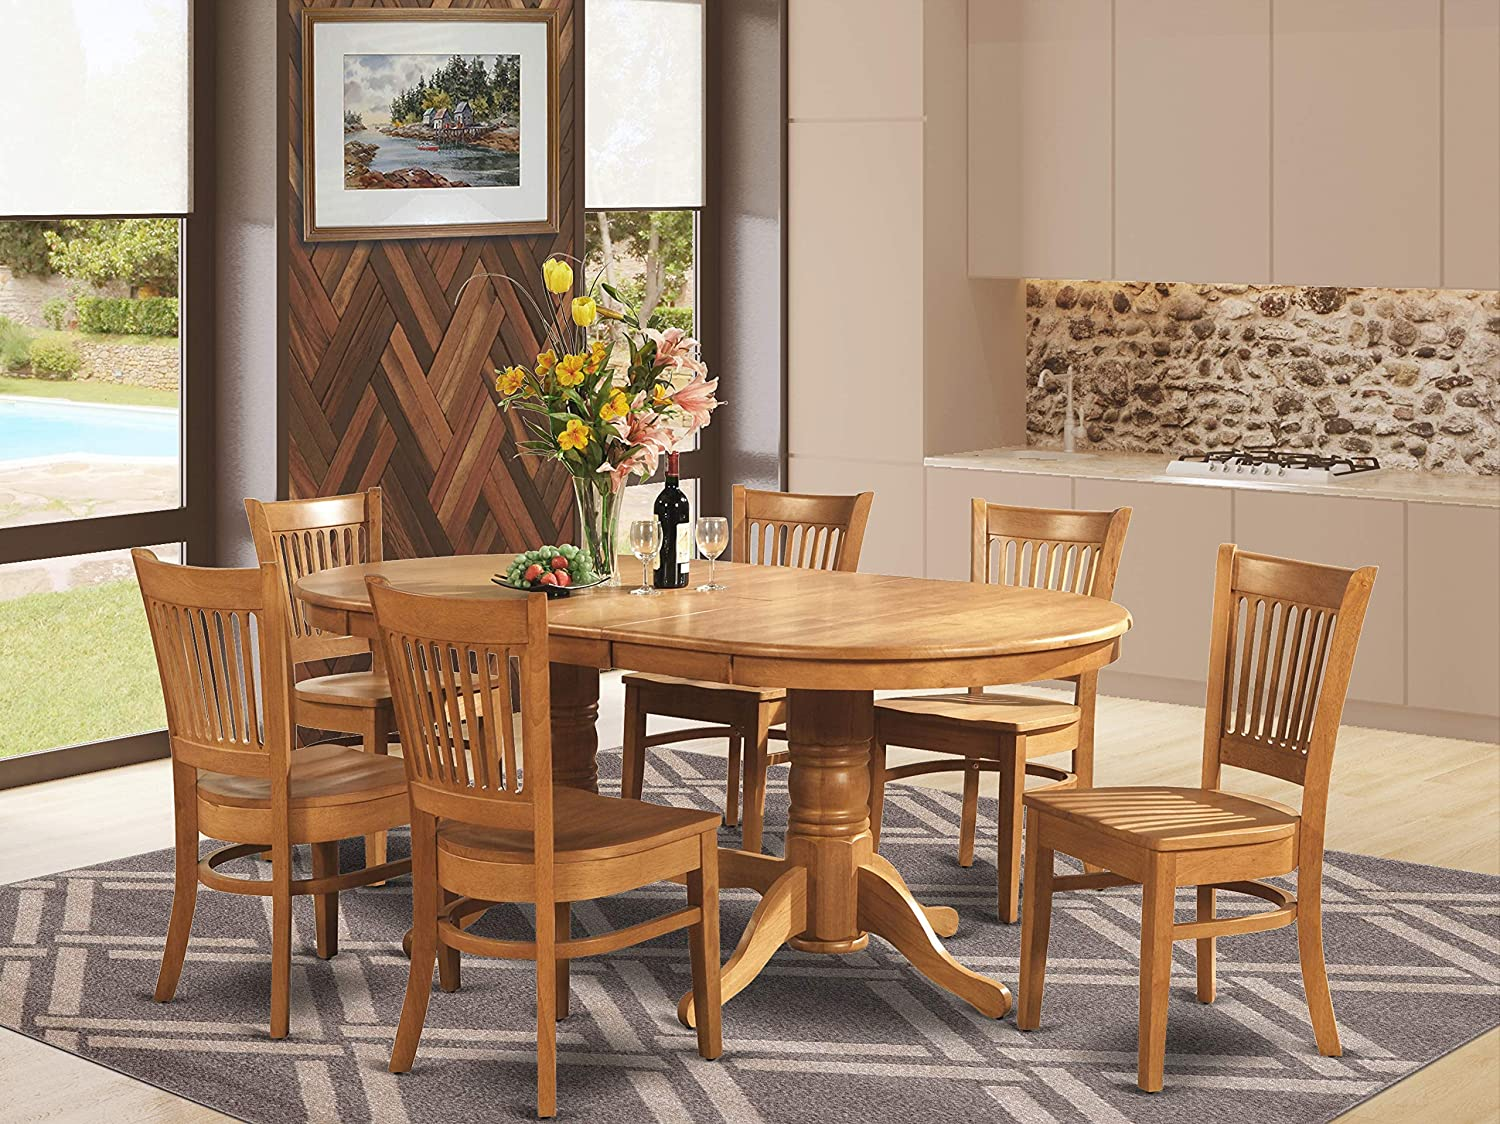 9 Pc Dining room set Dining Table with Leaf and 9 Dining Chairs